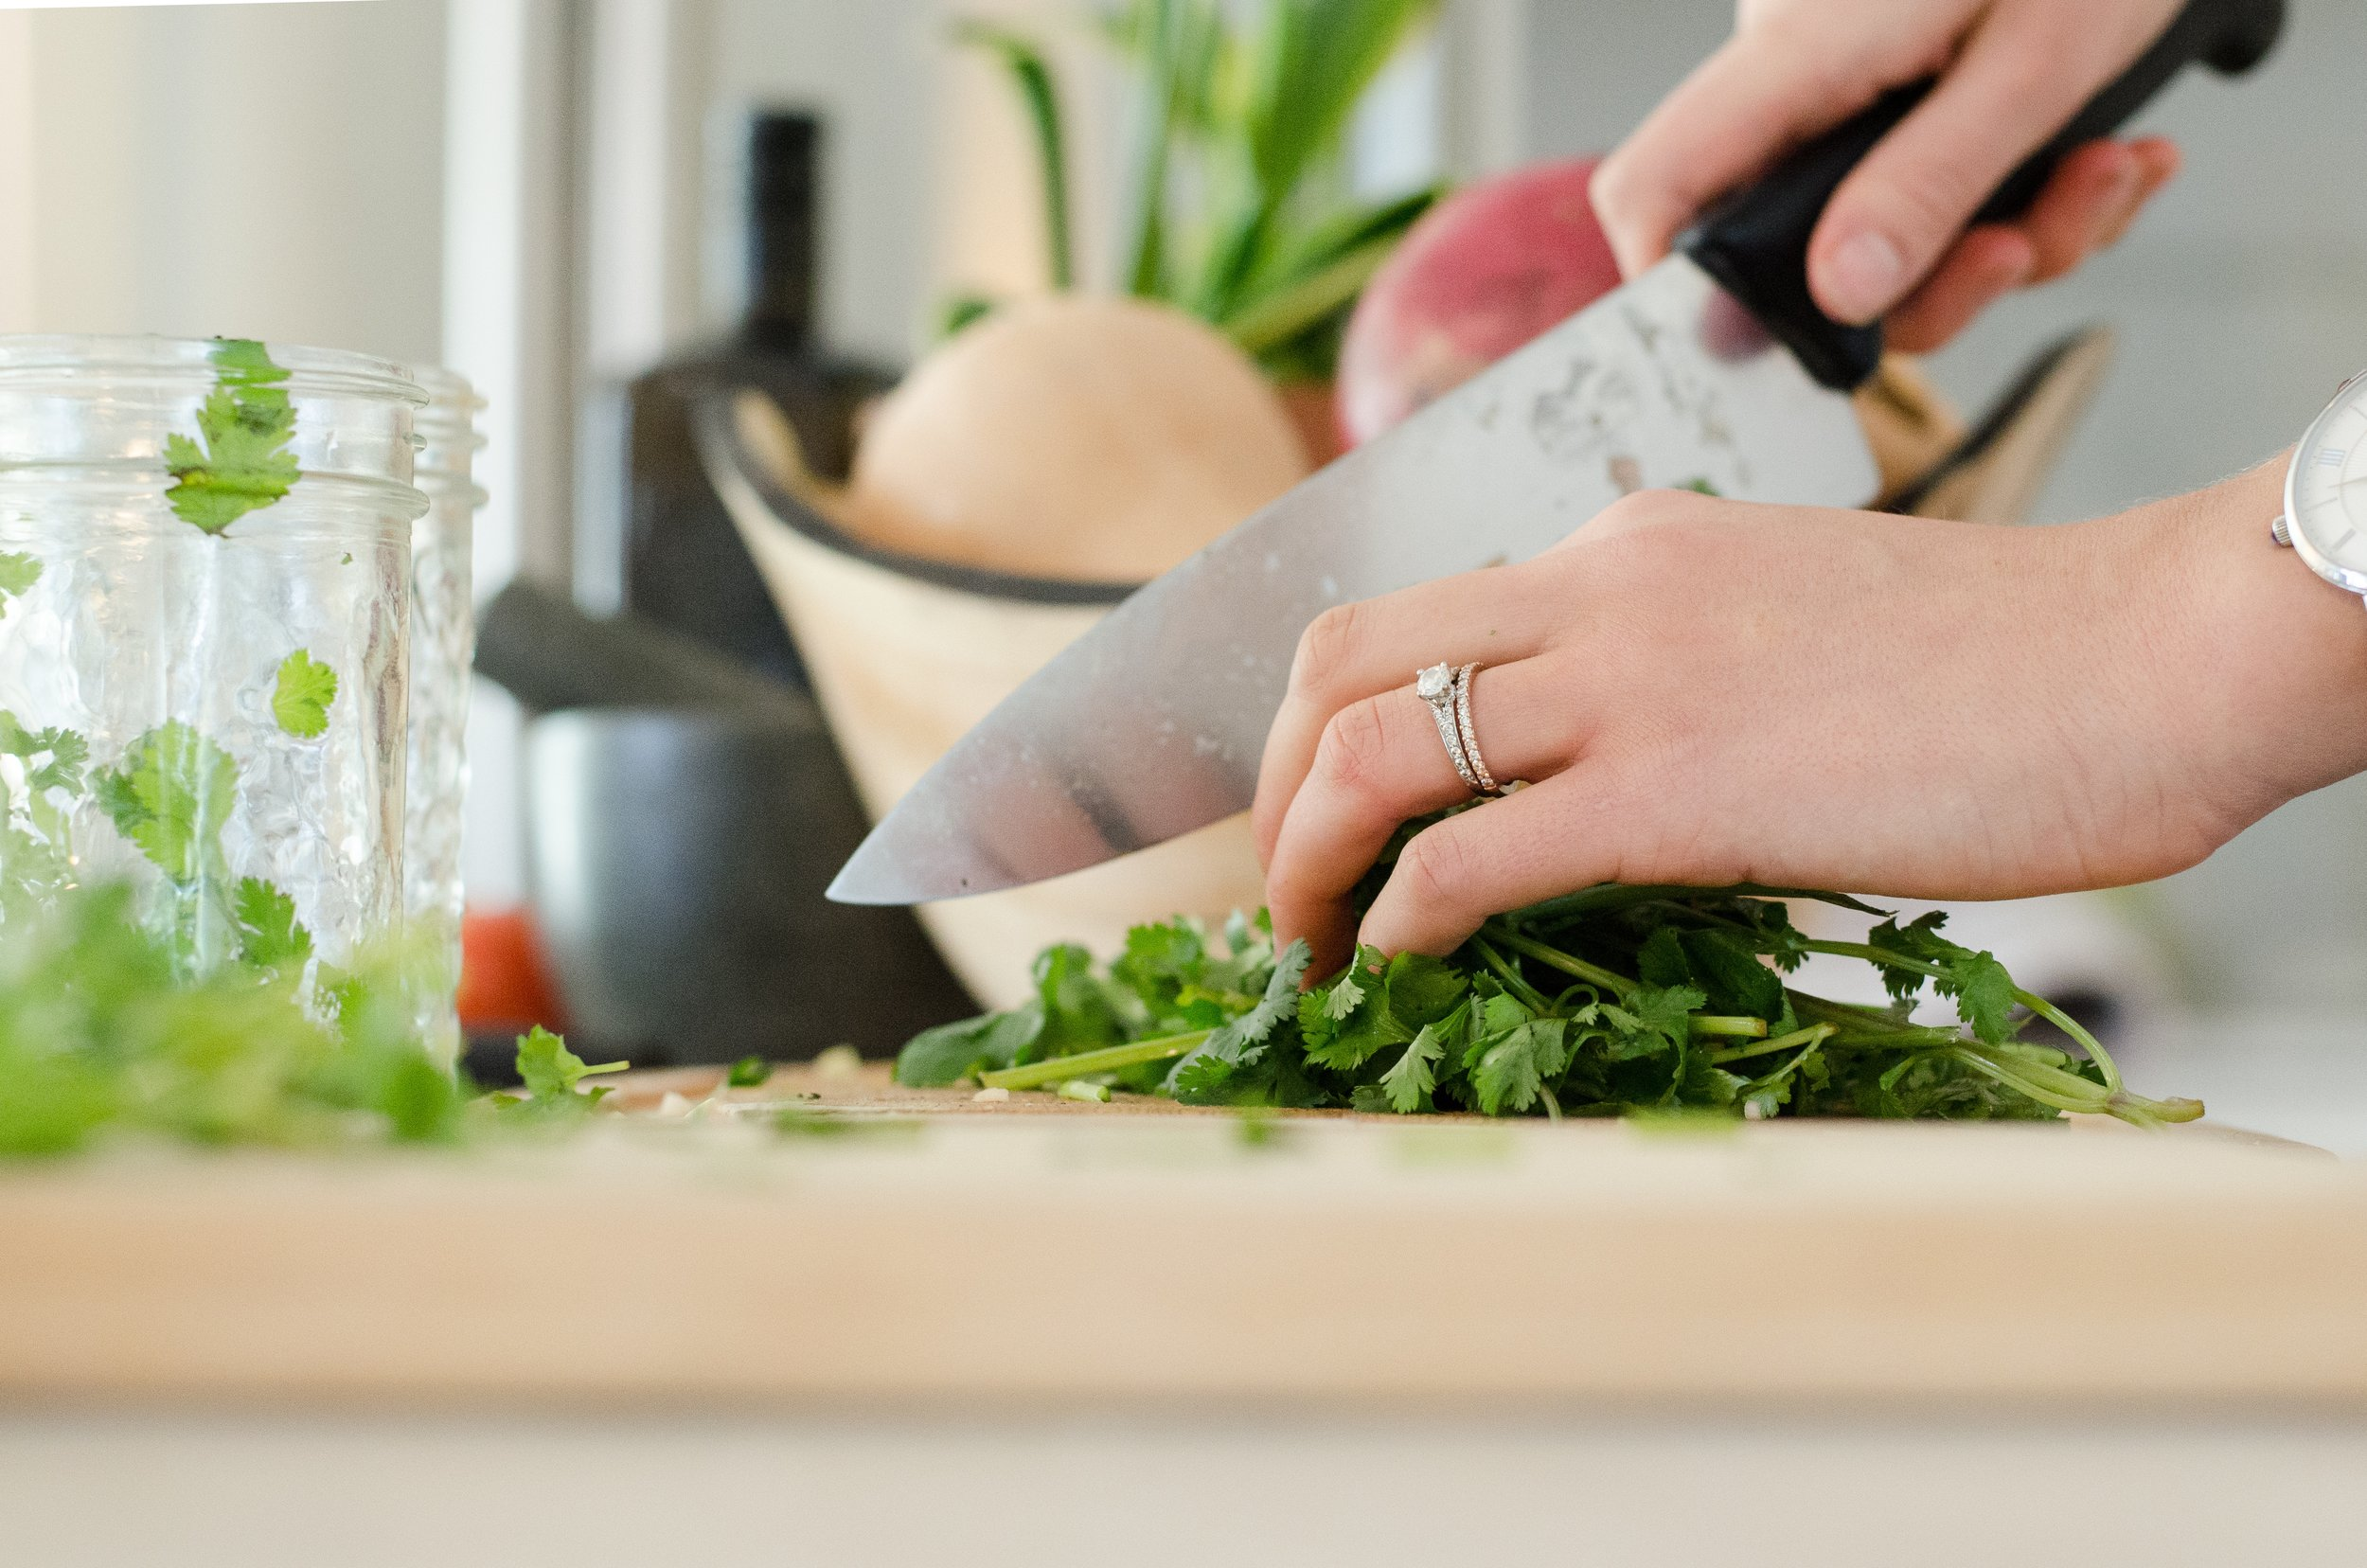 The Newbie in the Kitchen - Make wholesome, healthy meals in 30 mins or less